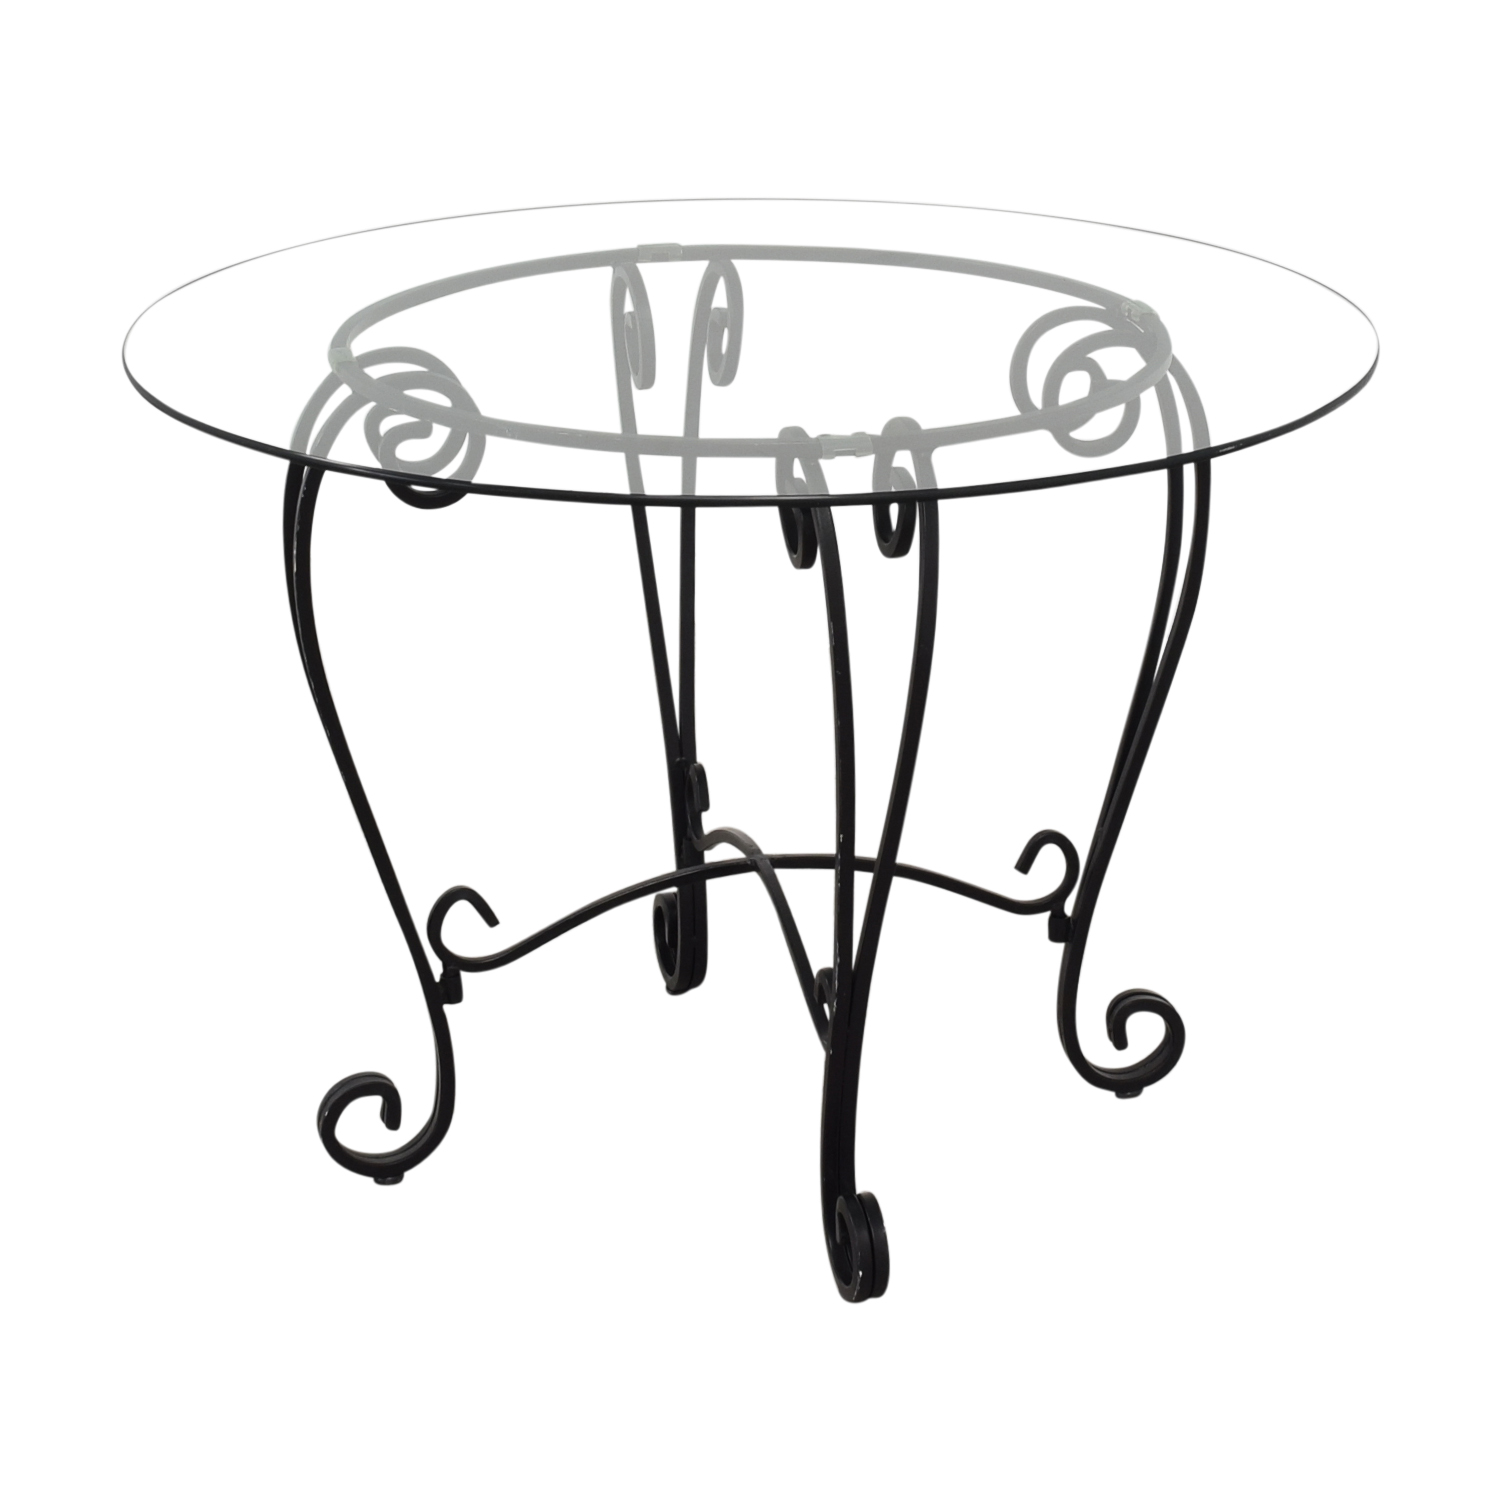 buy Crate & Barrel Crate & Barrel Glass Top Dining Table online